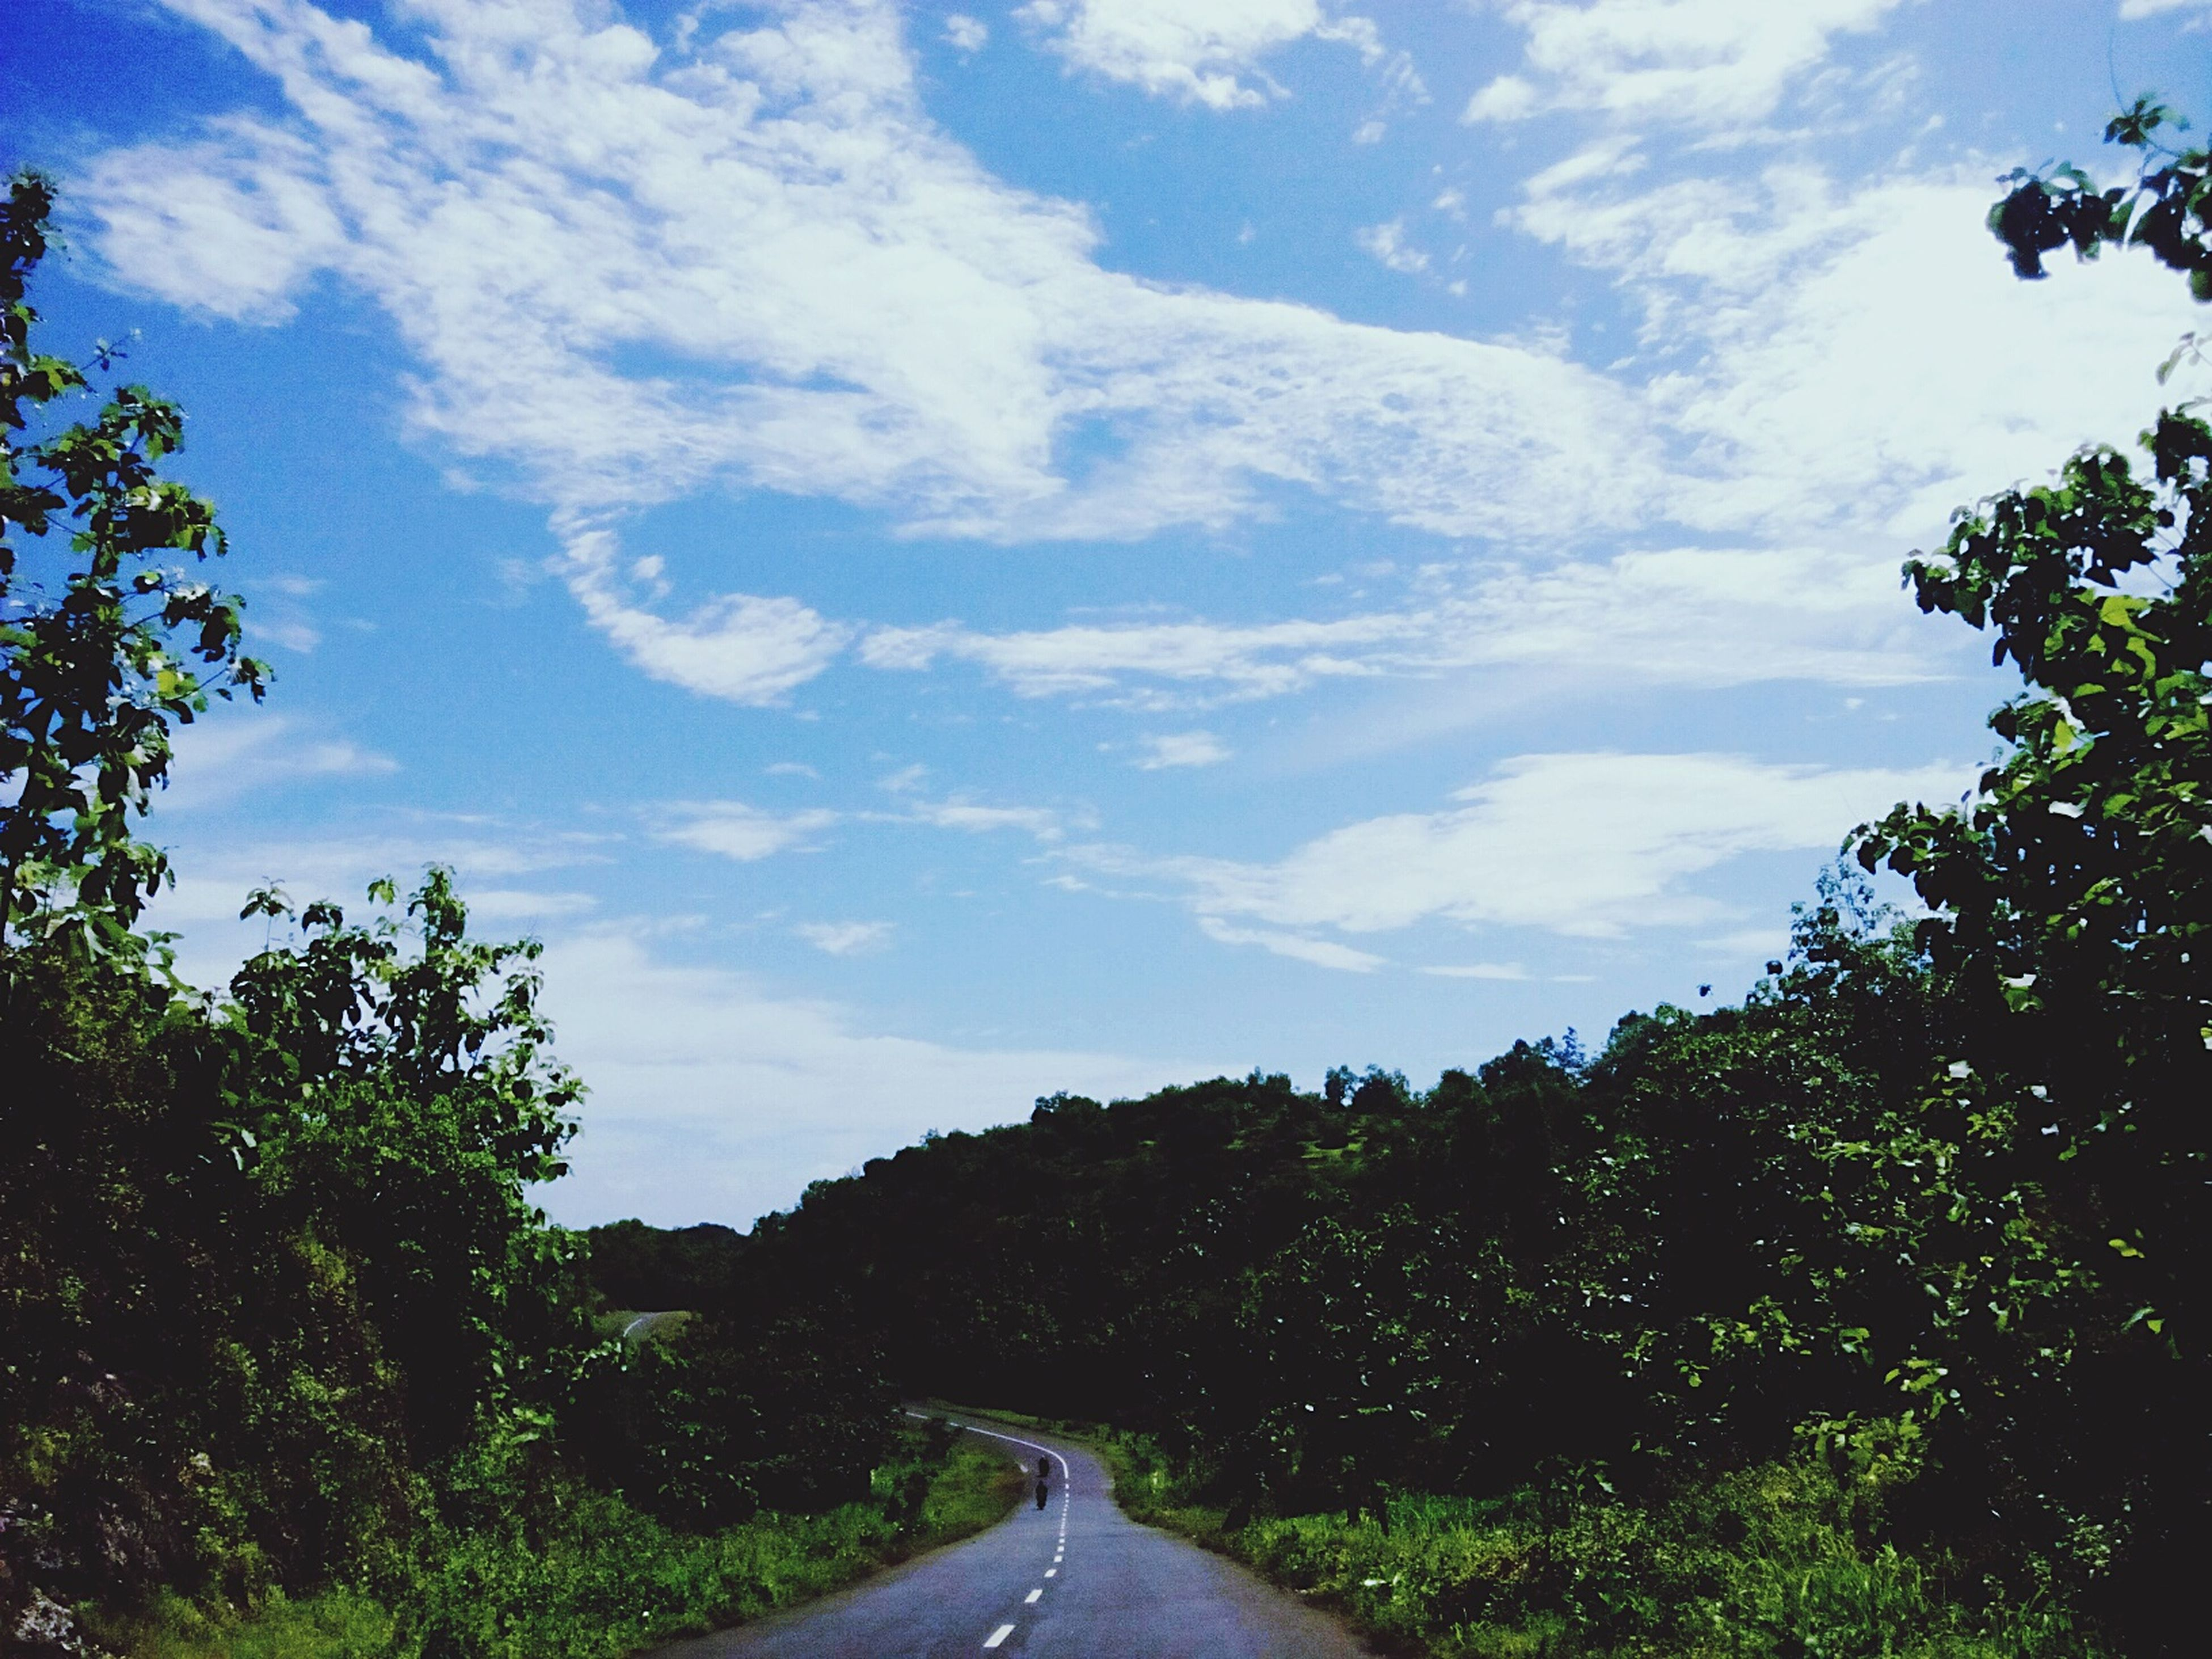 road, transportation, day, the way forward, tree, sky, cloud - sky, no people, nature, outdoors, landscape, beauty in nature